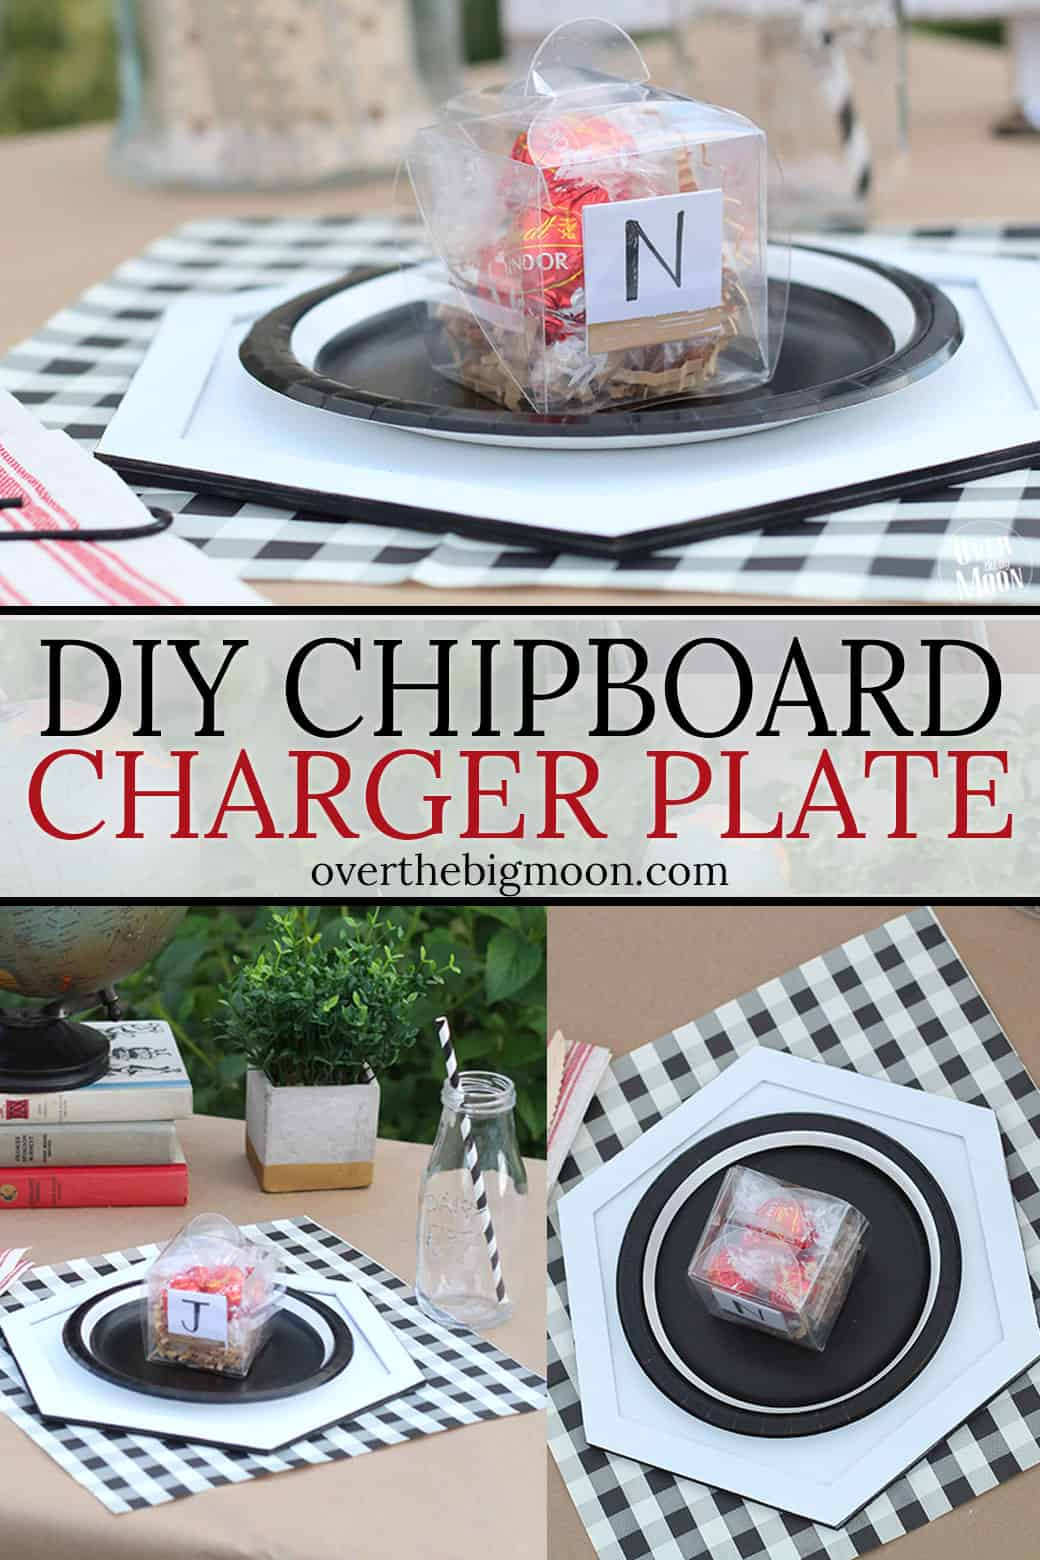 DIY Chipboard Charger Plate - made from Chipboard using the Knife Blade on the Cricut Maker! From overthebigmoon.com!